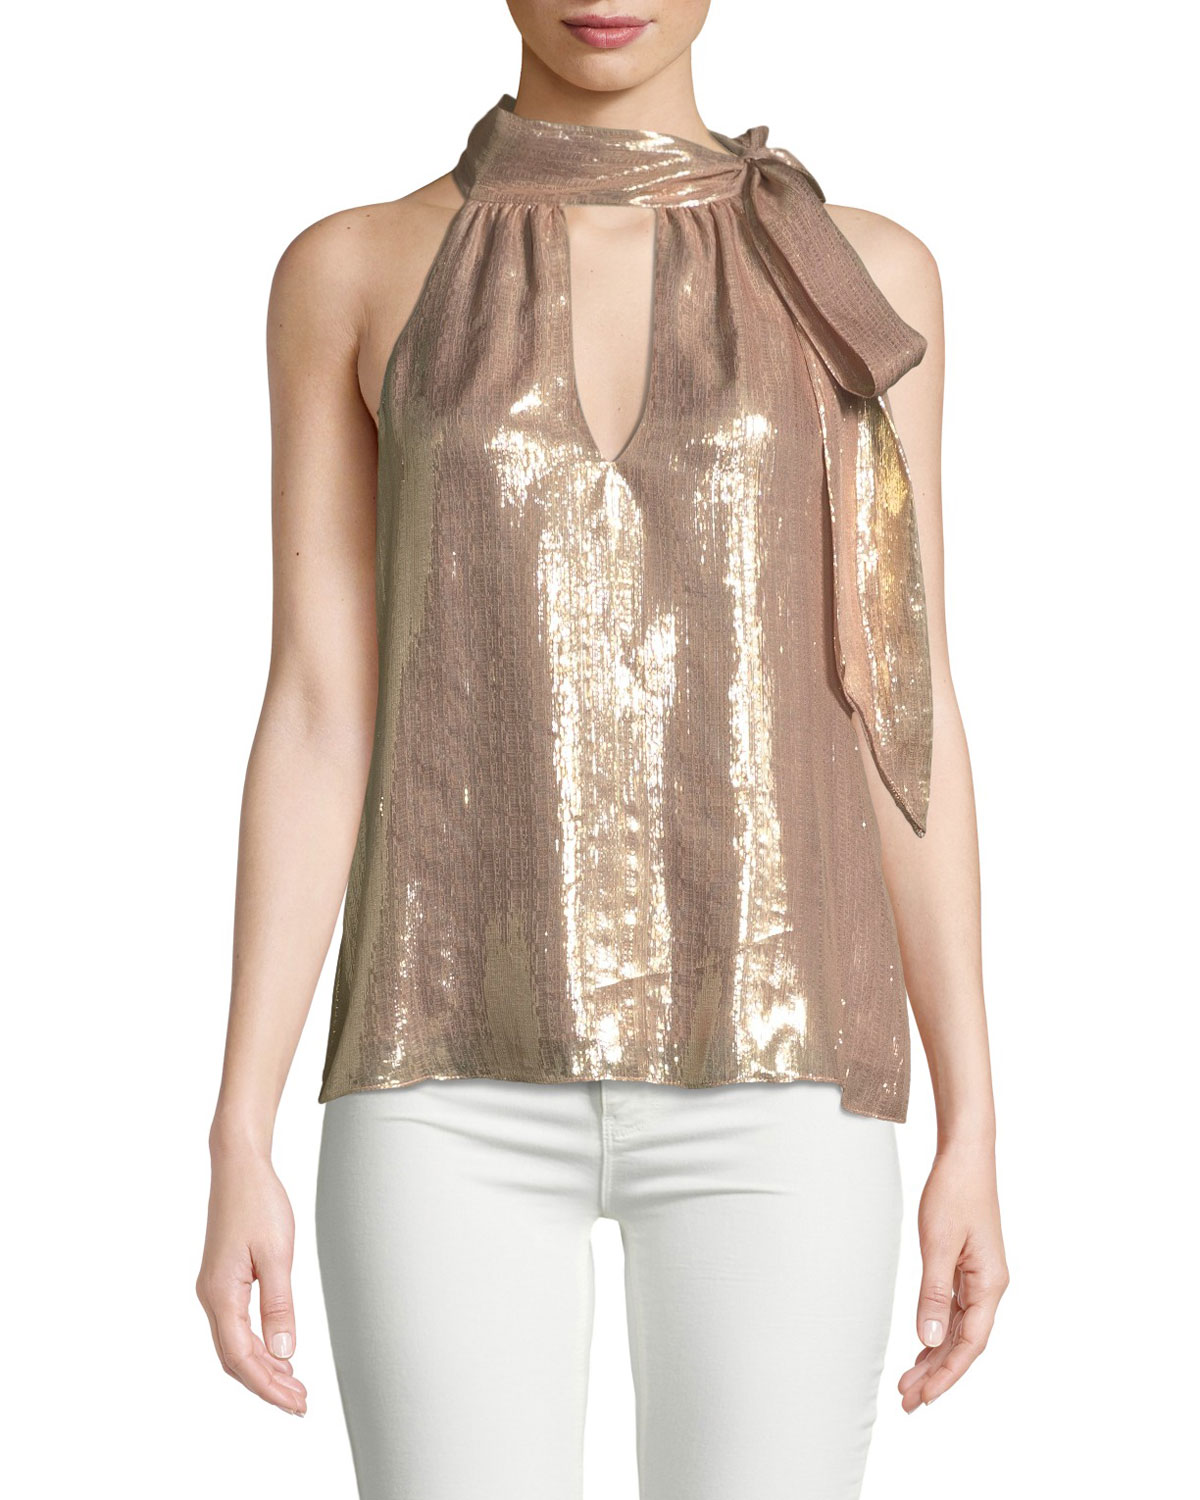 Ramy Brook Tops SASHA METALLIC TIE-NECK SLEEVELESS TOP